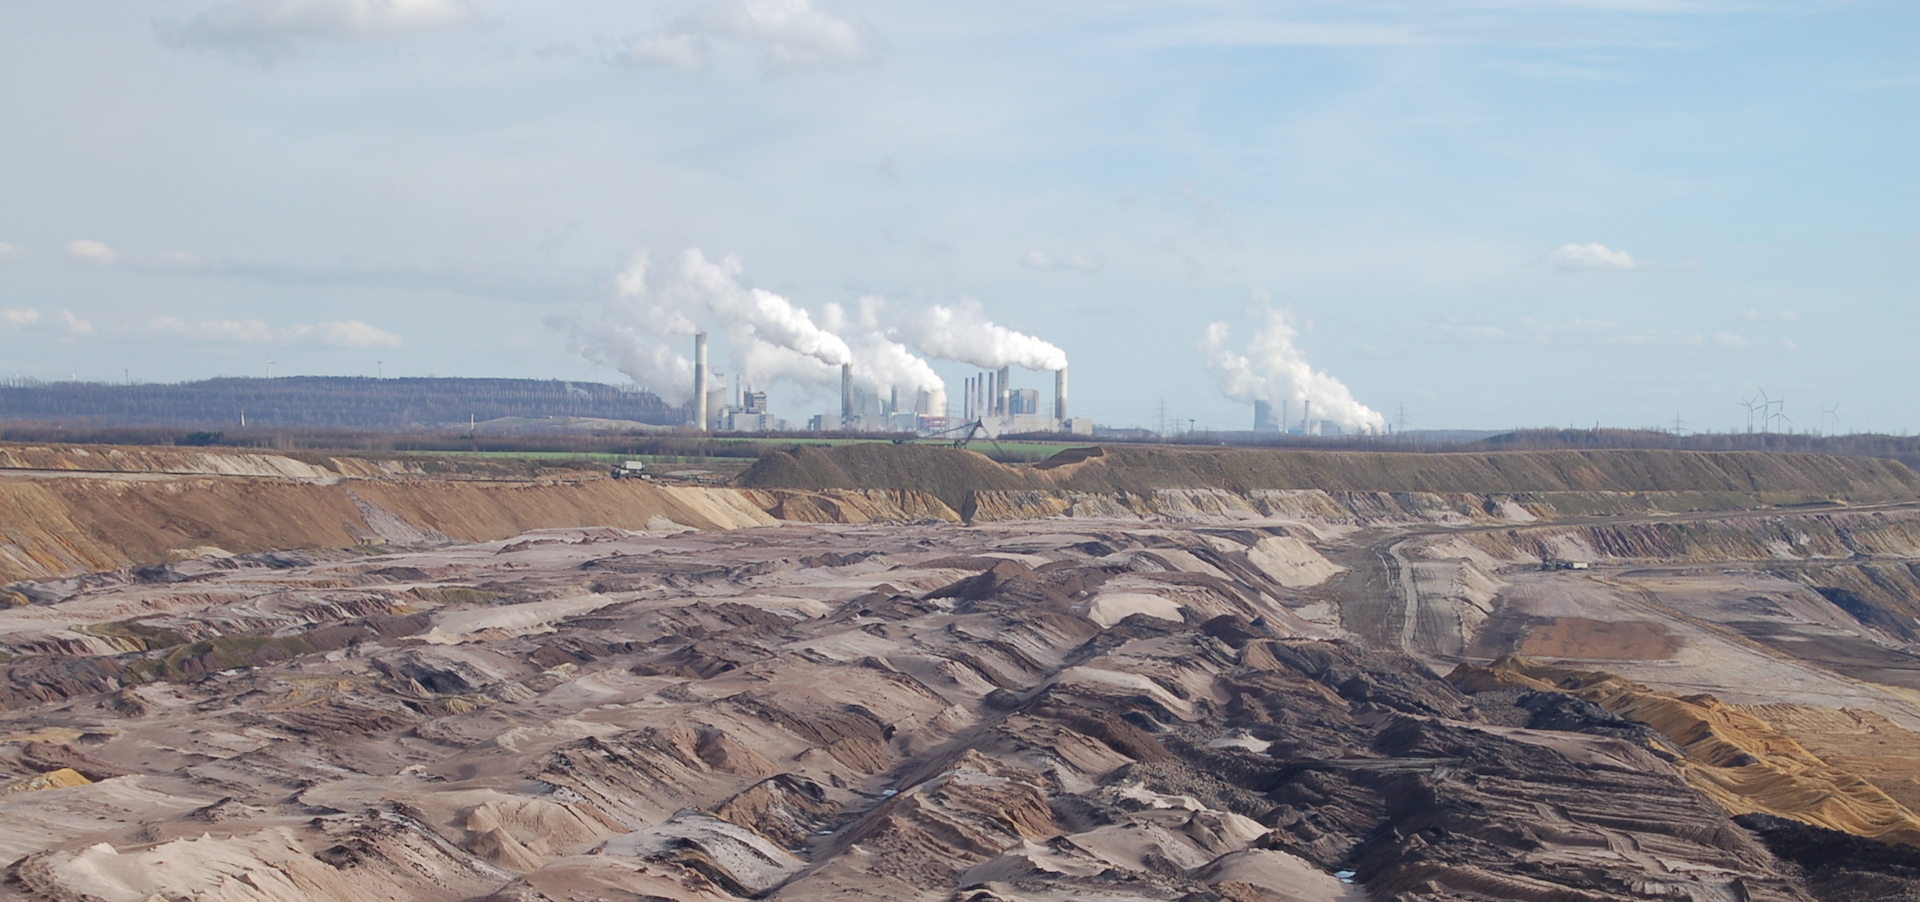 view of lignite lining fields with coal plant in the background